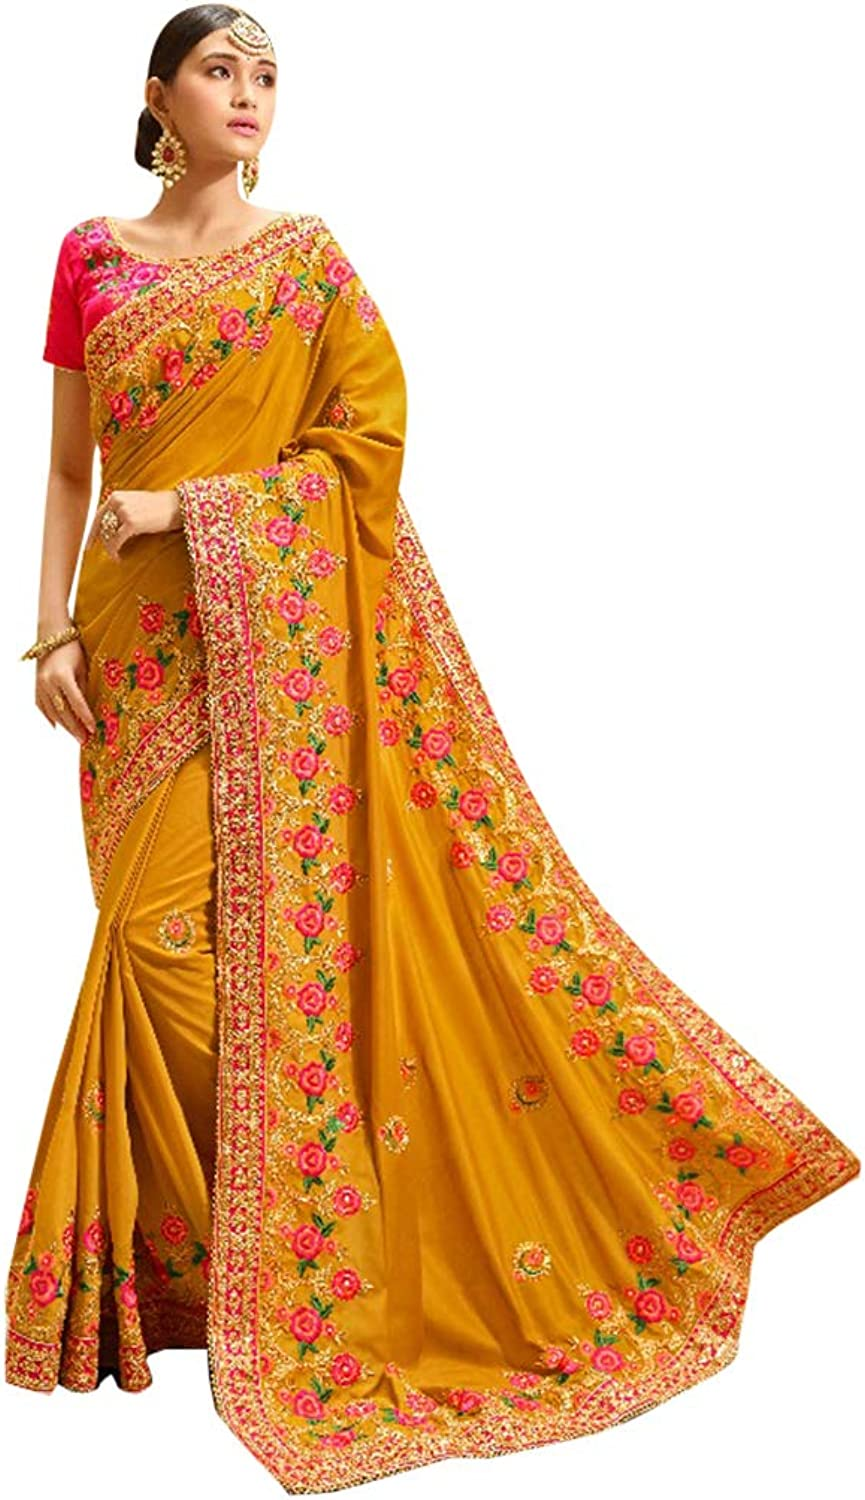 Mustard Silk Party Wear Collection of Designer Saree with Stylish Heavy Border Contrast Blouse Sari Indian Ethnic Women 754